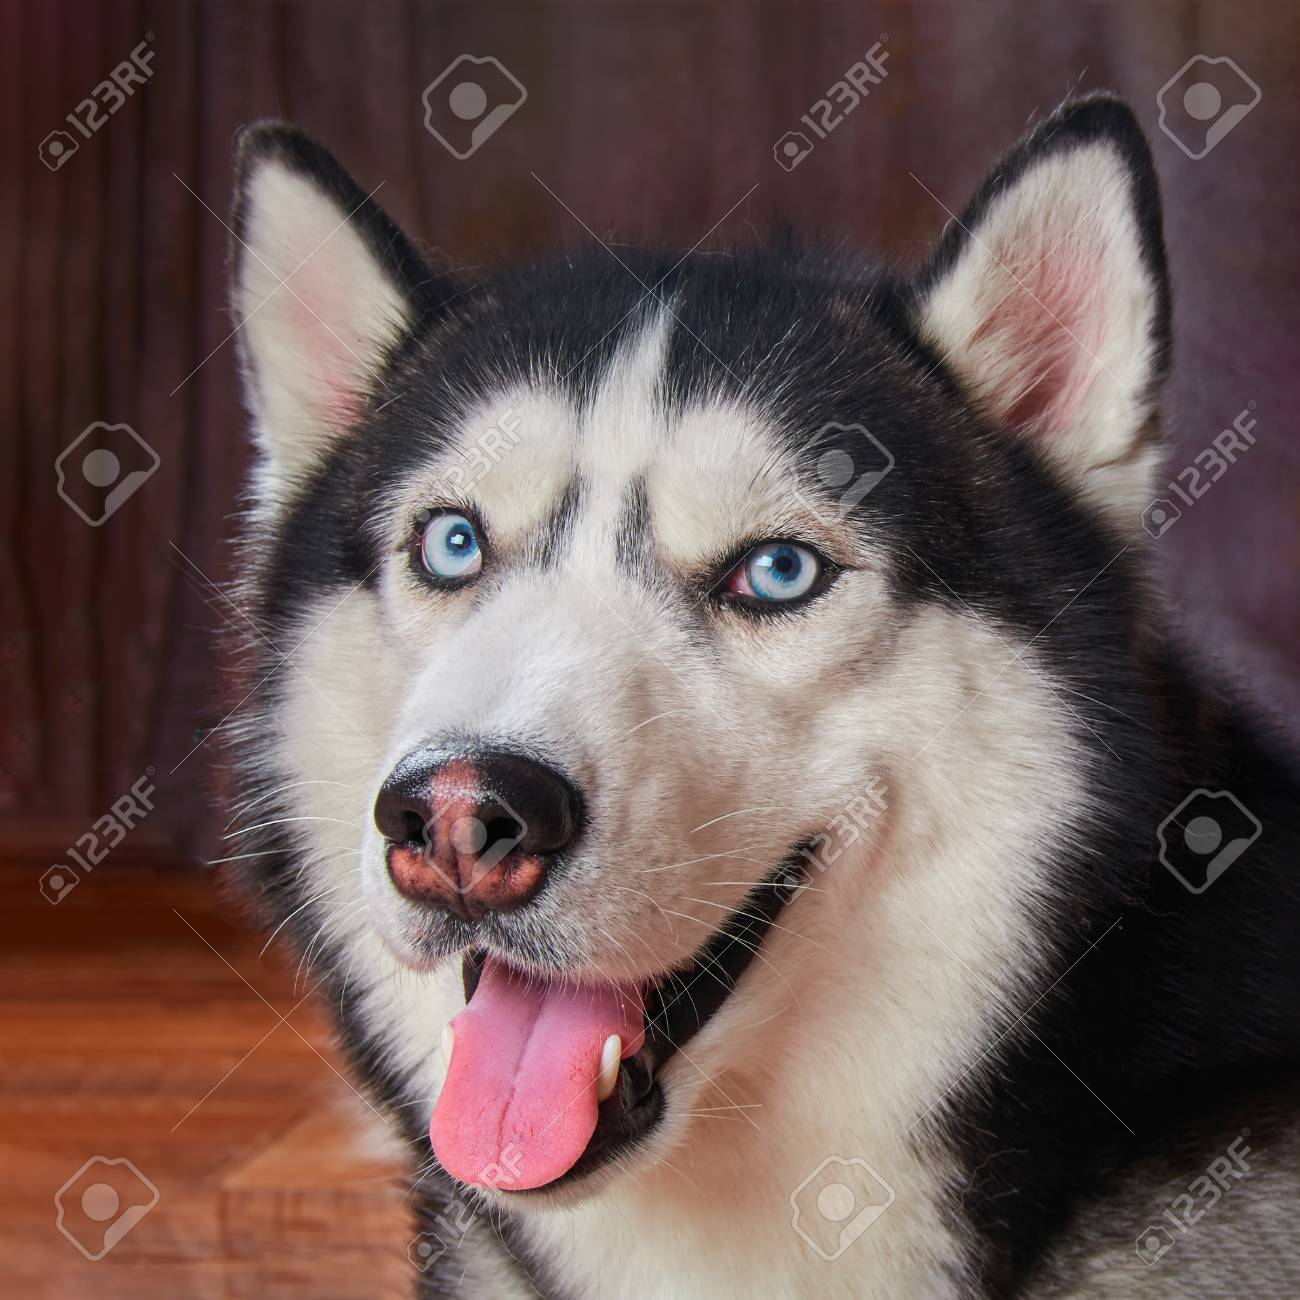 Happy Muzzle Dog Husky Looks At Photographer Siberian Husky